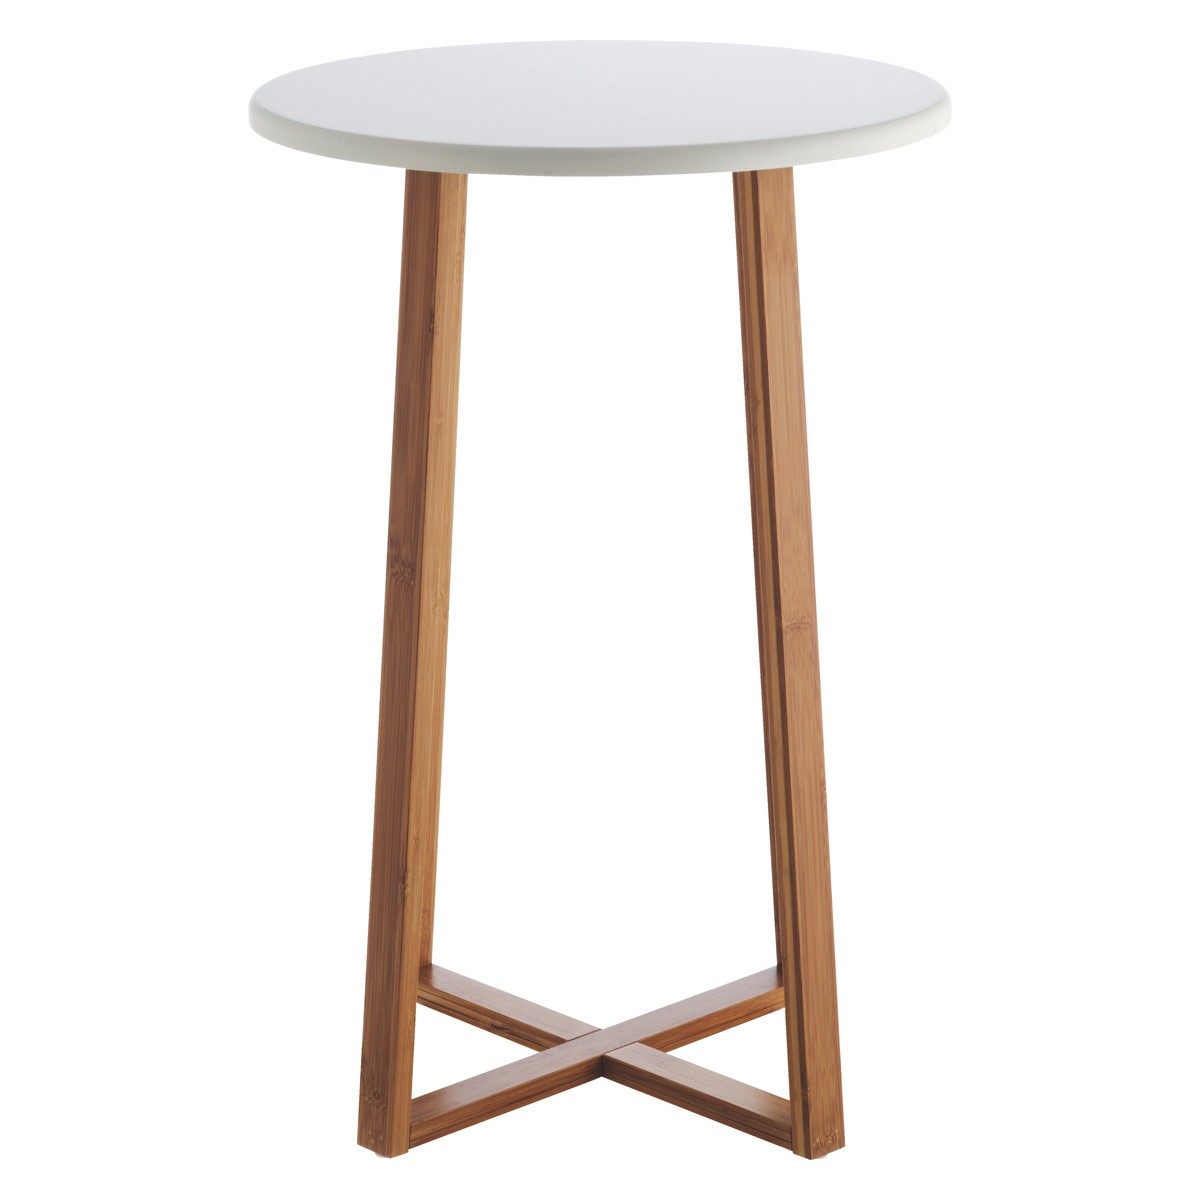 perfect stools sofas decoration and tall sofa narrow table dining drew bamboo for lacquer side daniella drawer wood storage accent end tables with peculiar ikea boxes asian